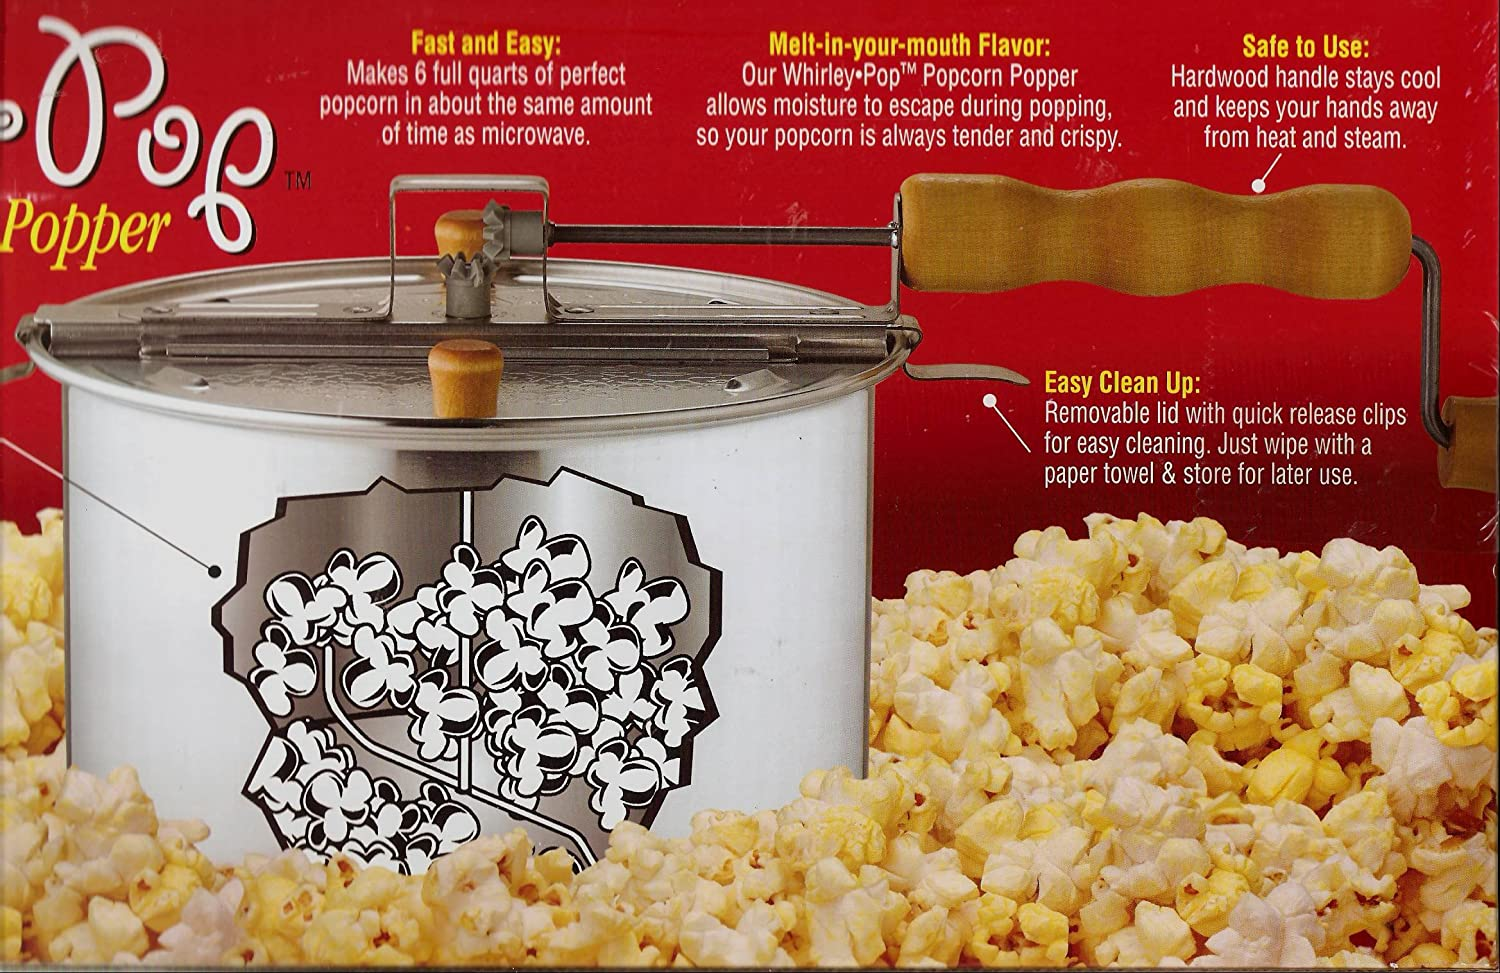 The Original Whirley-Pop 3-Minute Popcorn Popper Wabash Valley Farms